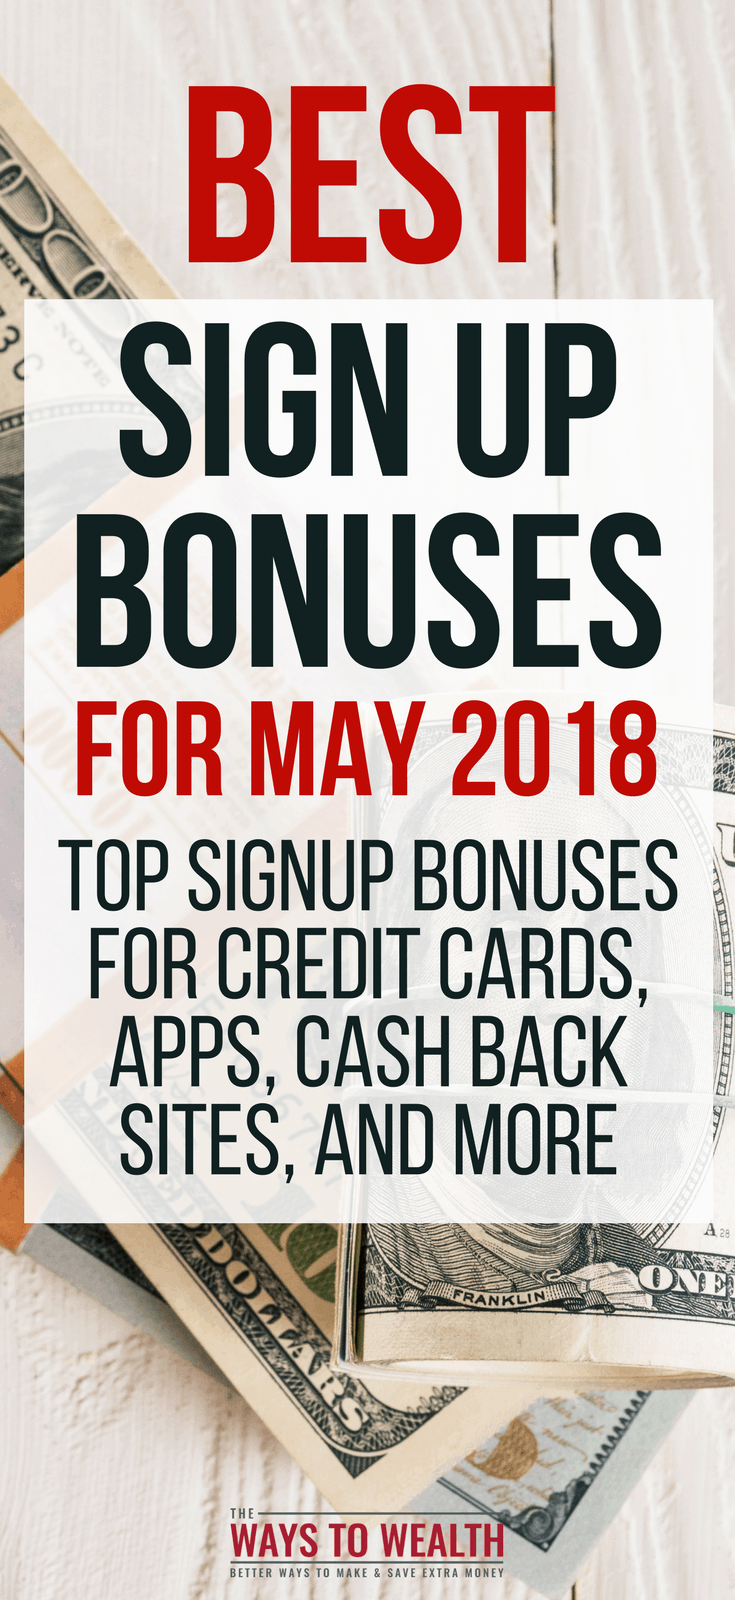 Best Free Money Hacks & Bonus Offers of May 2018 free money hacks tips | money making apps best | best credit cards for travel | top credit cards rewards | quick ways to make money fast #thewaystowealth #sidehustle #credit #hacks